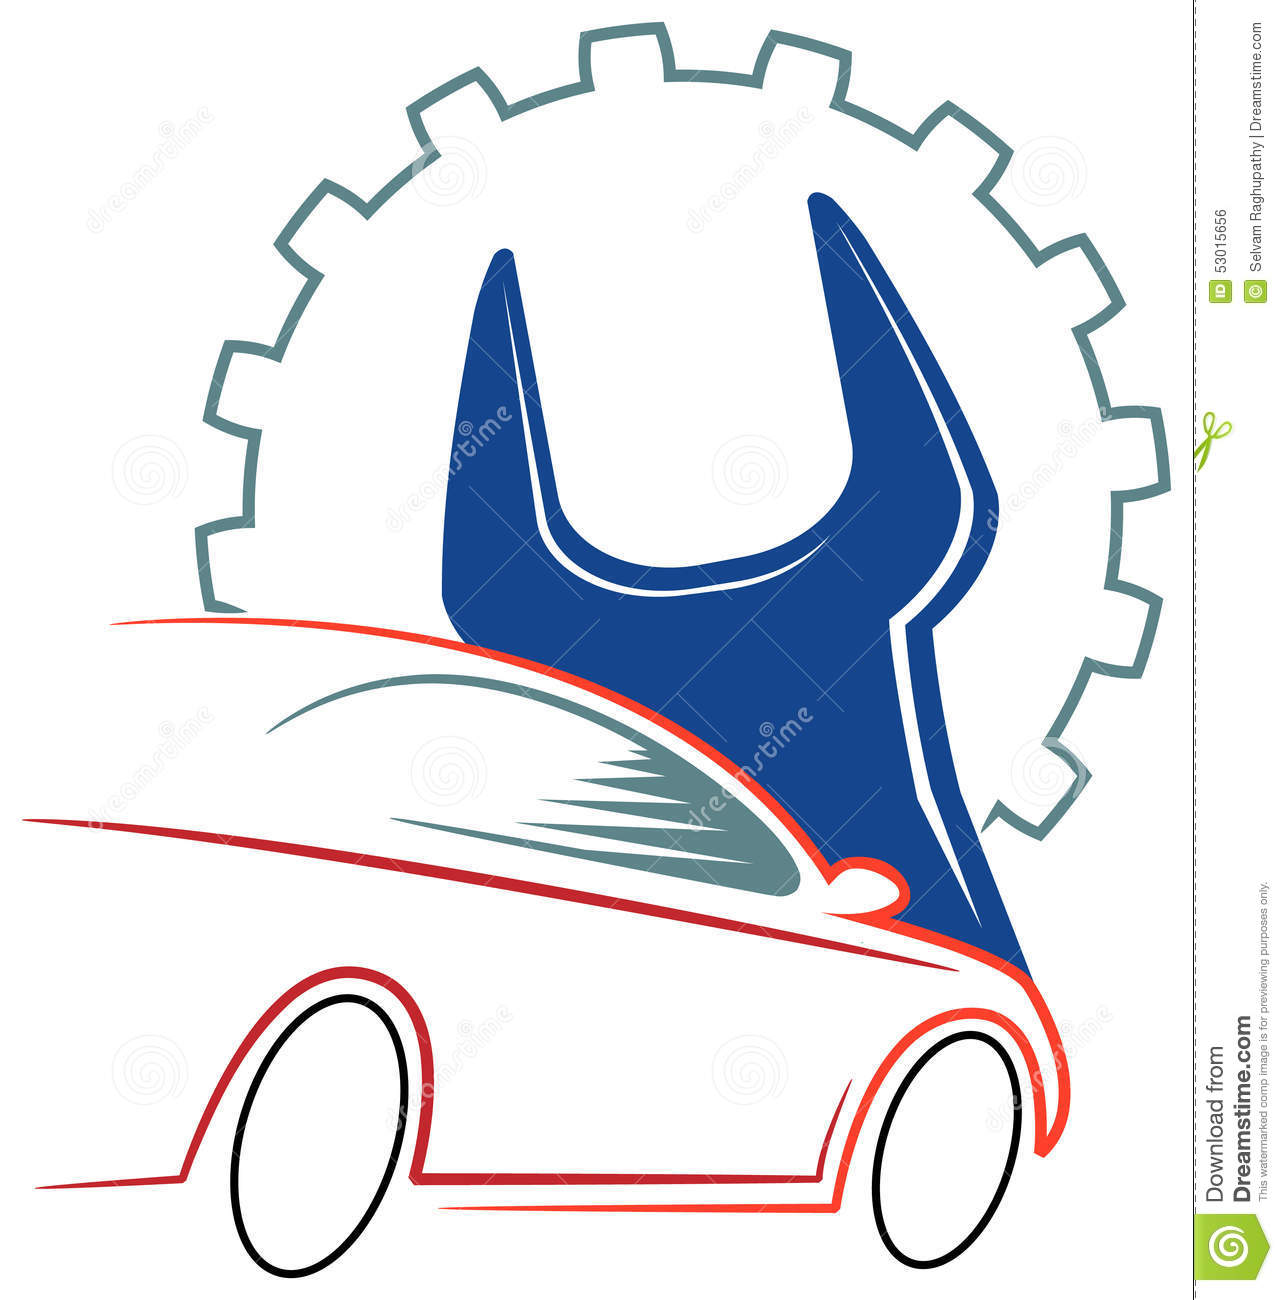 Automobile Workshop Logo Stock Vector - Image: 53015656